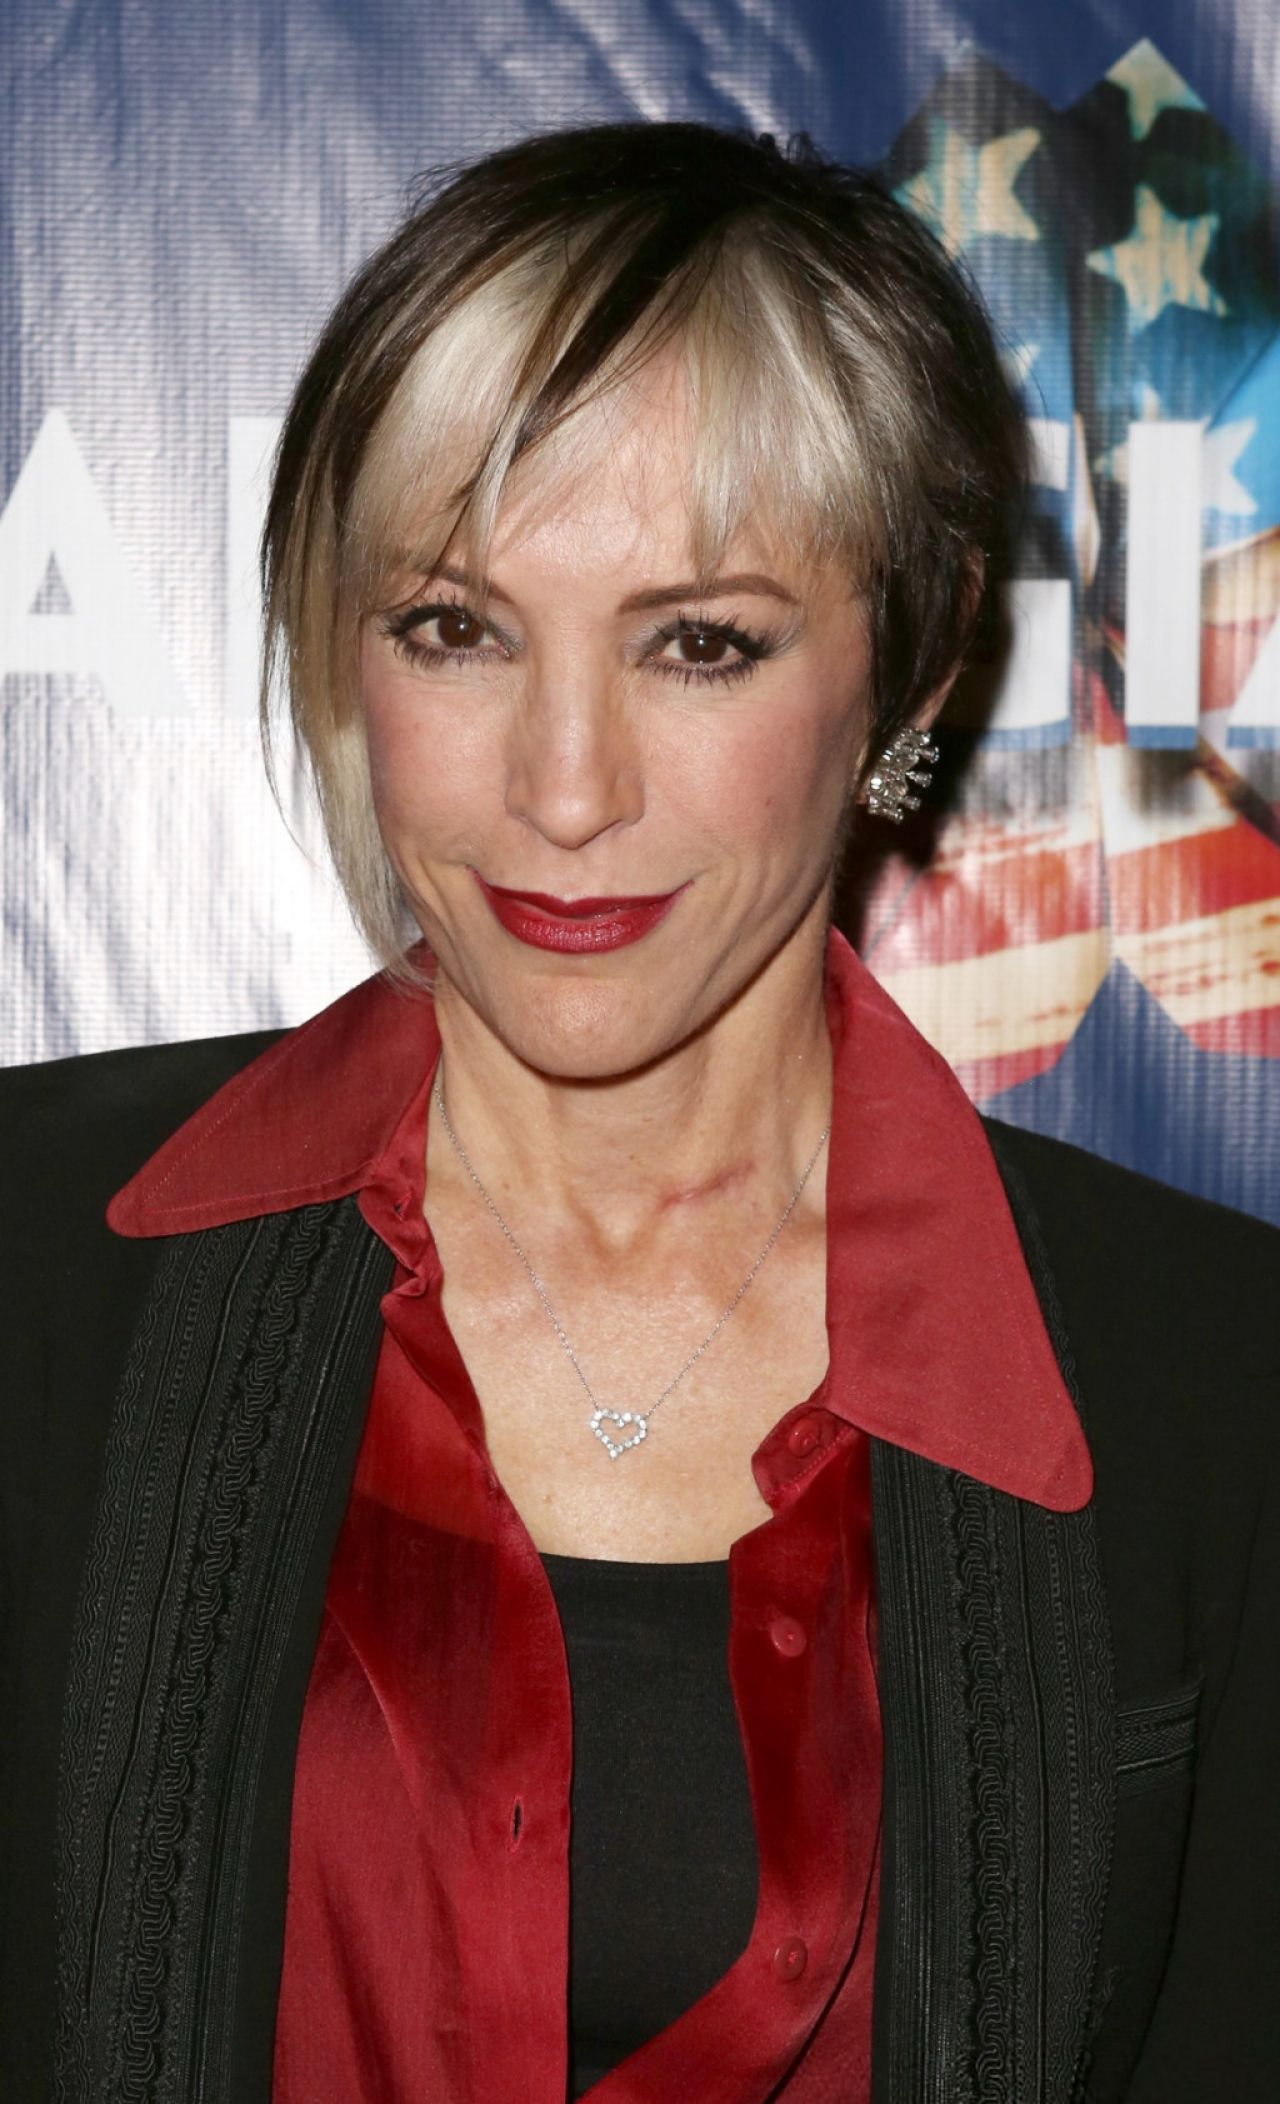 Nana Visitor For mobile